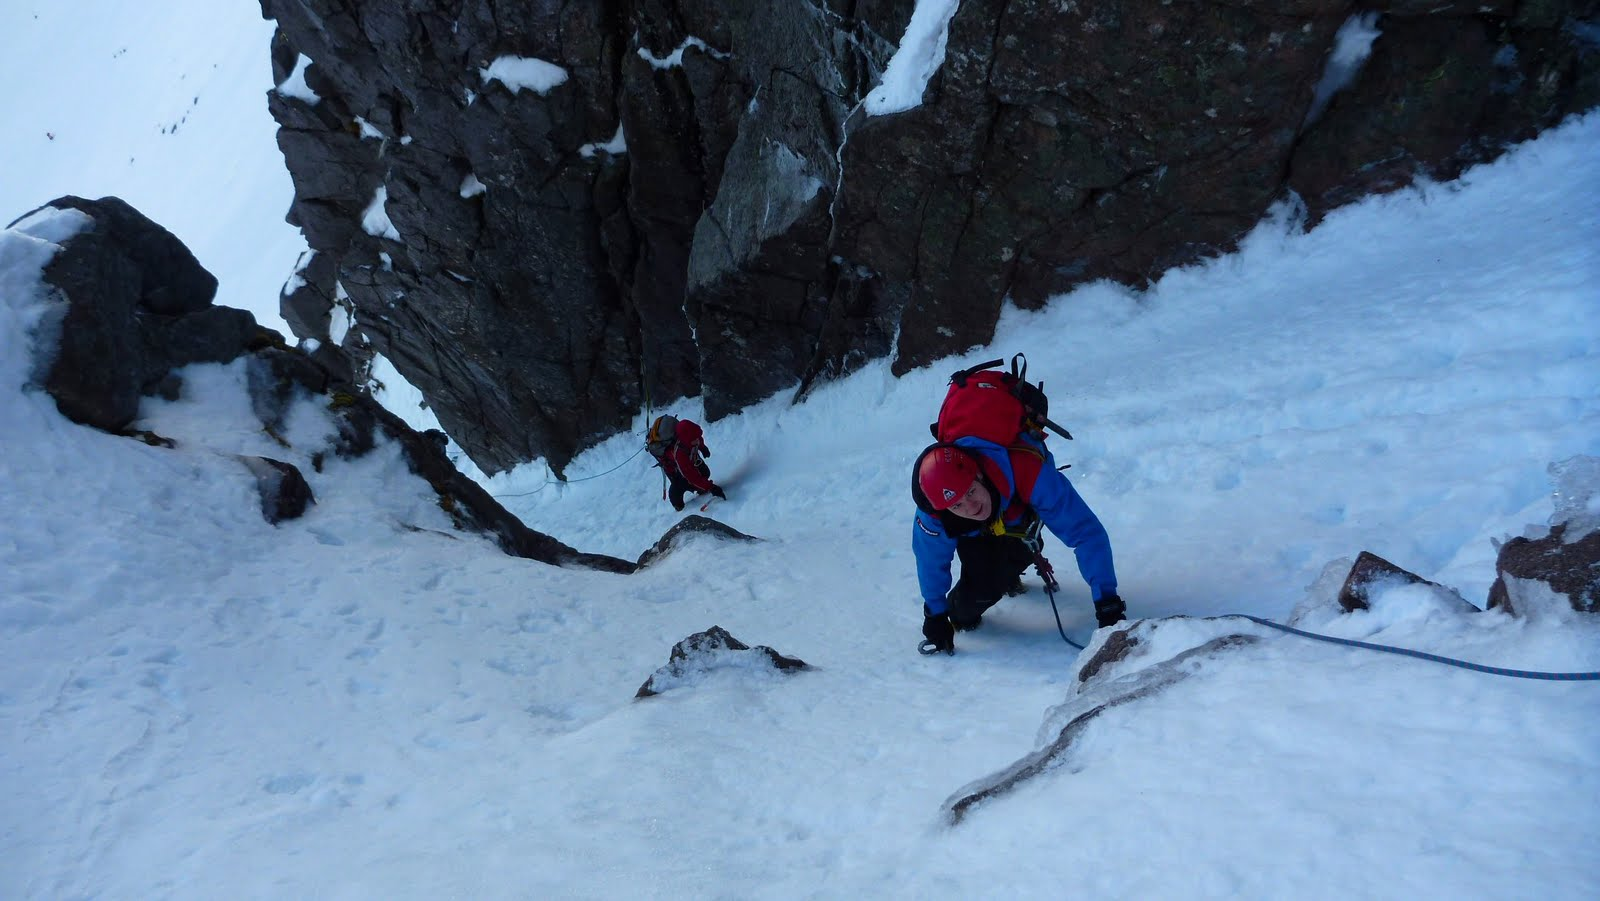 Climbing in Jacobs Ladder, Northern Corries, 132 kb